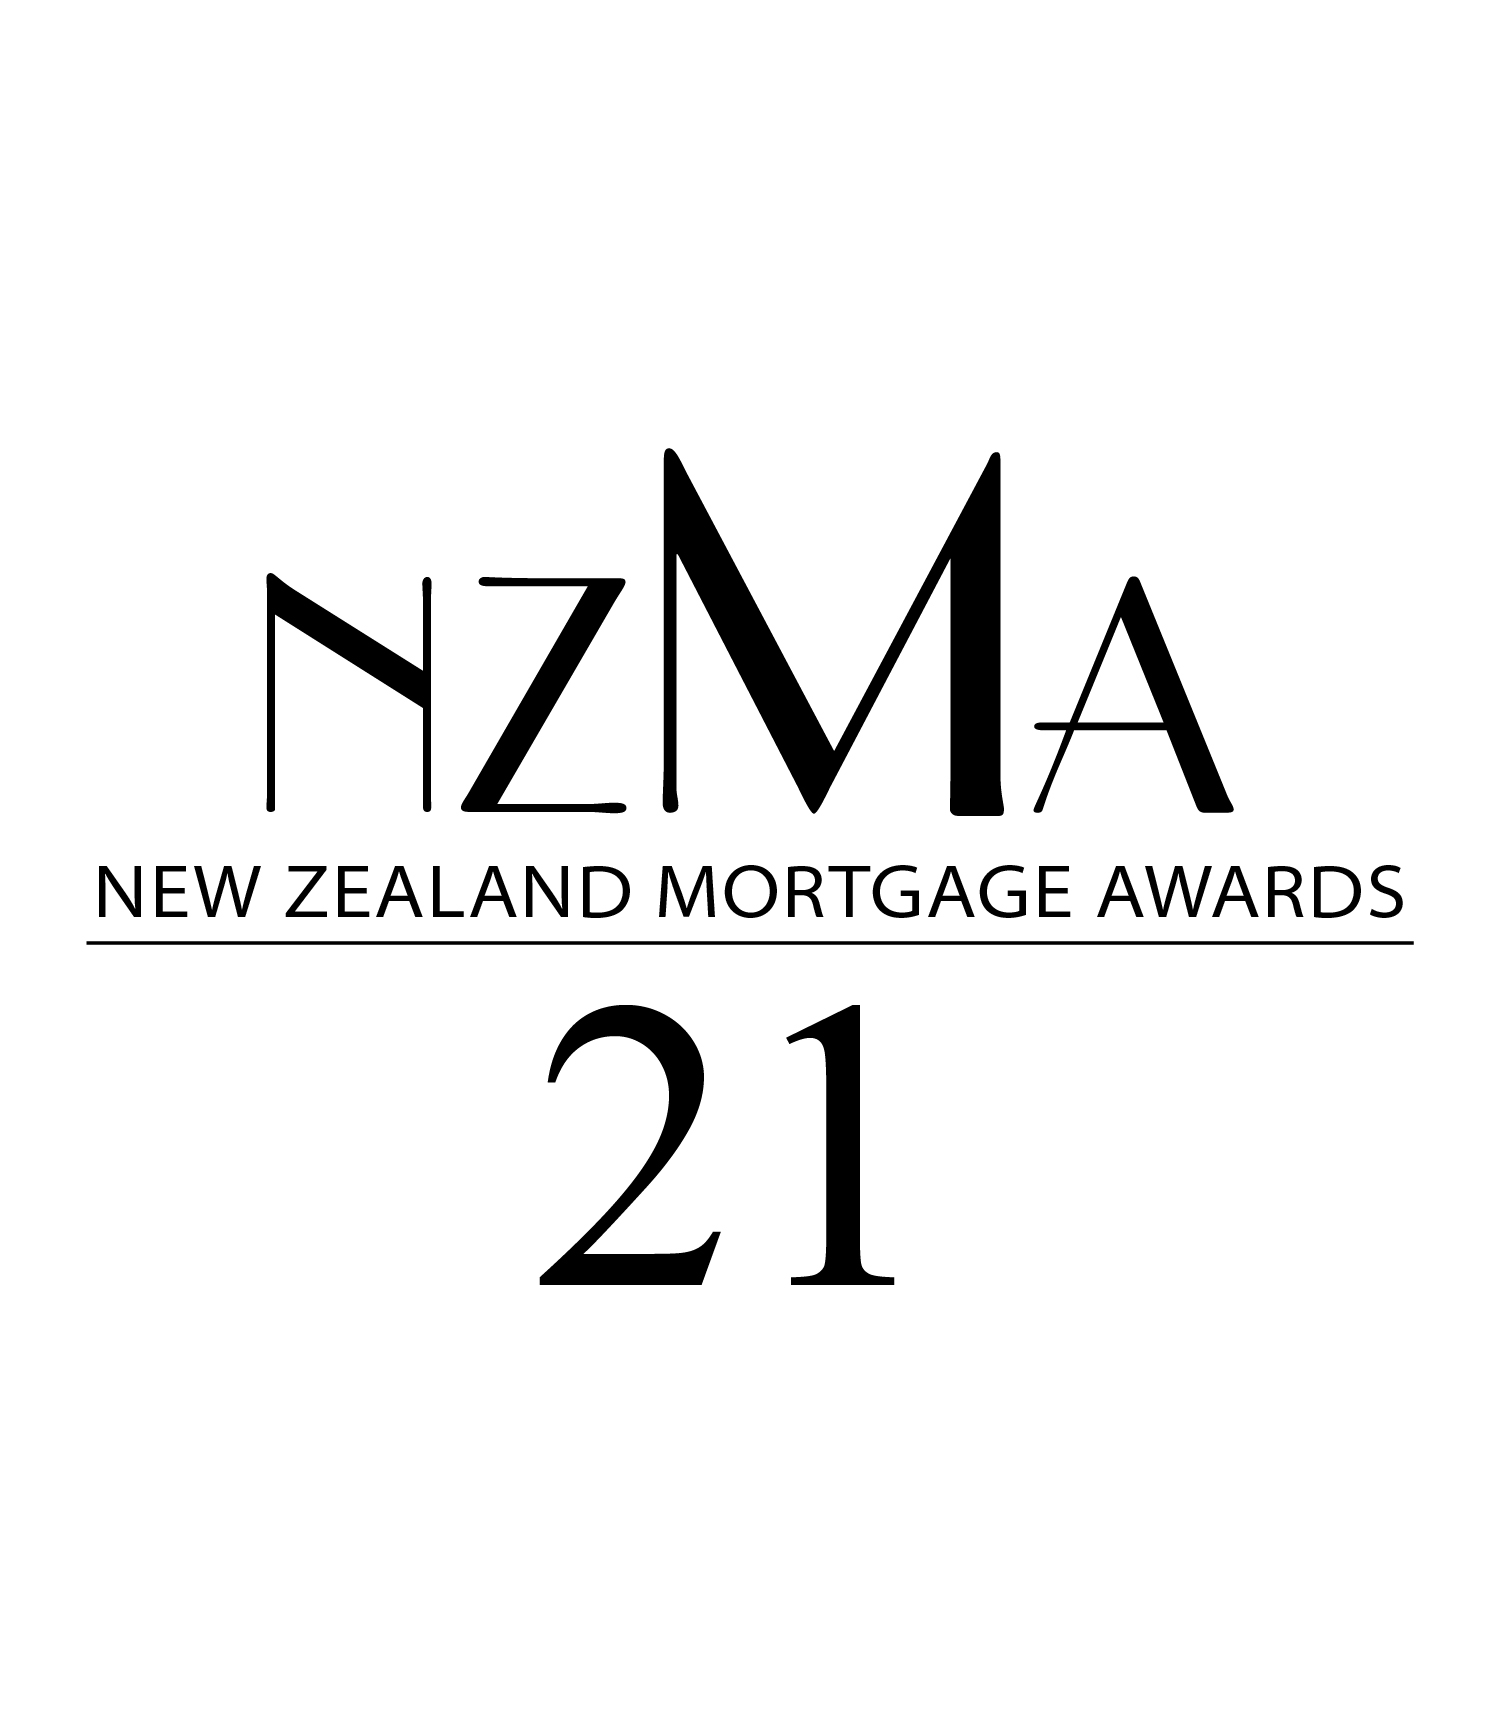 New Zealand Mortgage Awards 2021